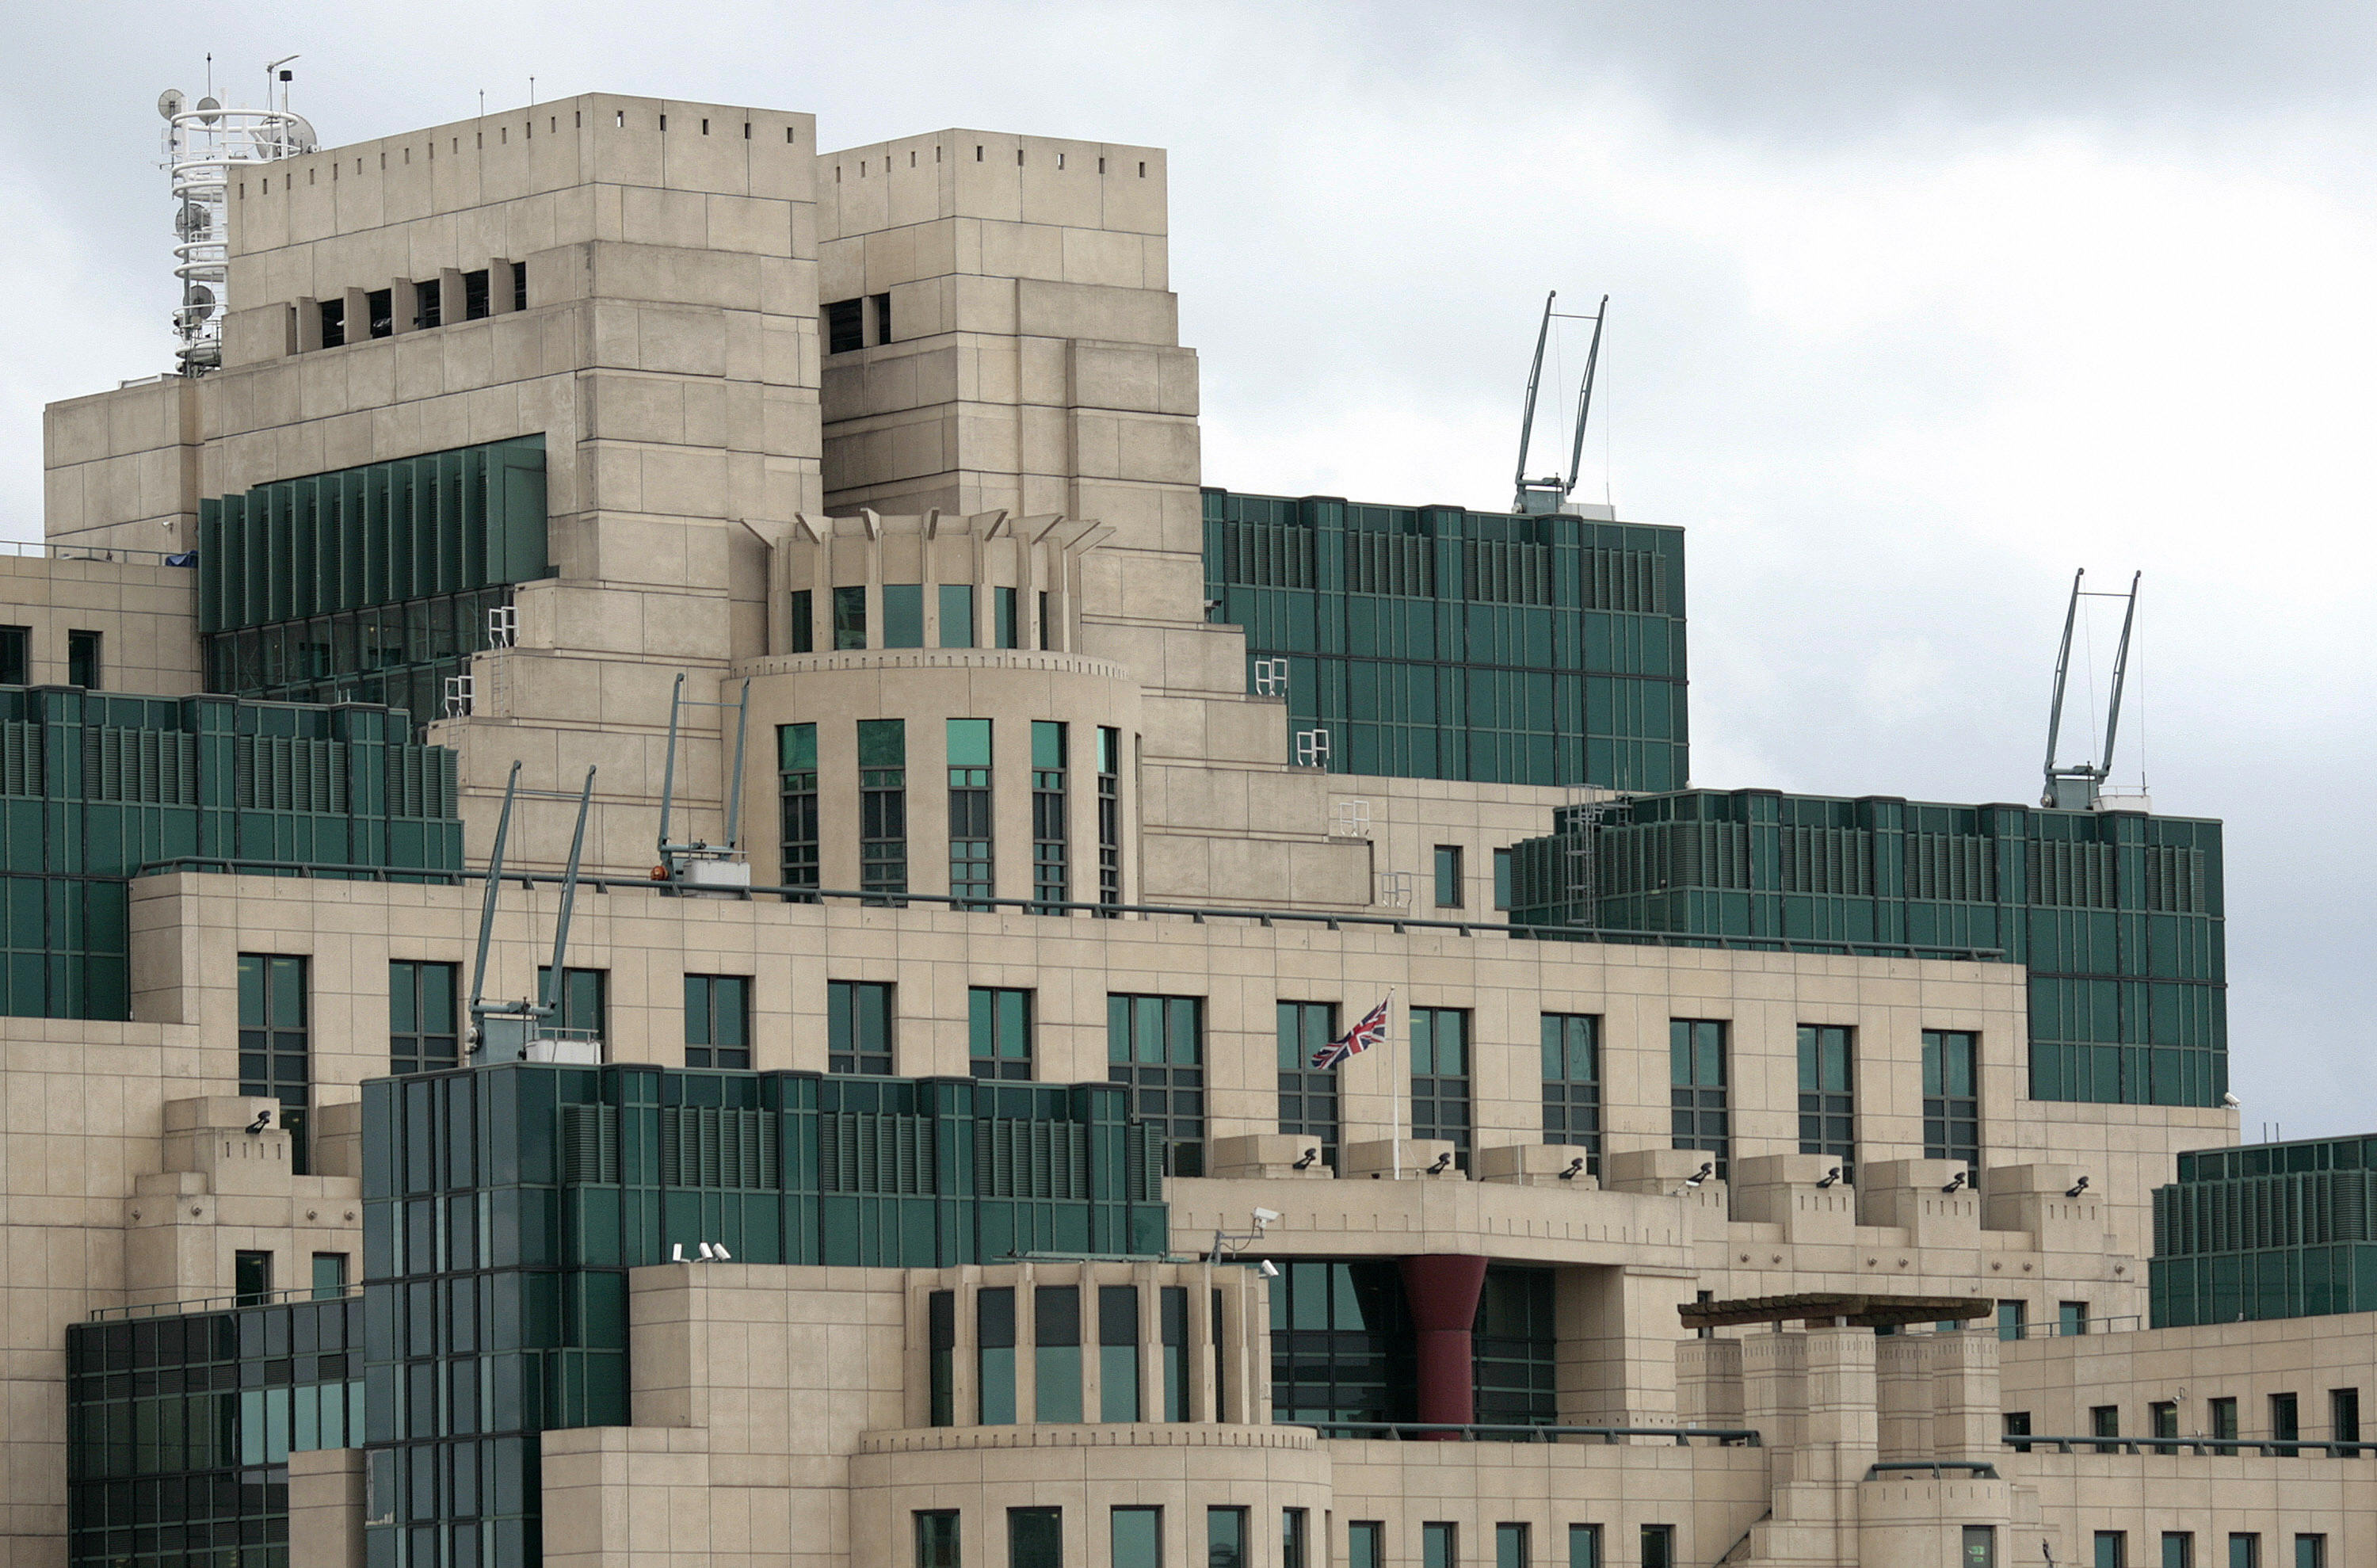 The MI6 building, which is the SIS (The Secret Intelligence Service) headquarter, is pictured at Vauxhall Cross in central London on March 3, 2009.